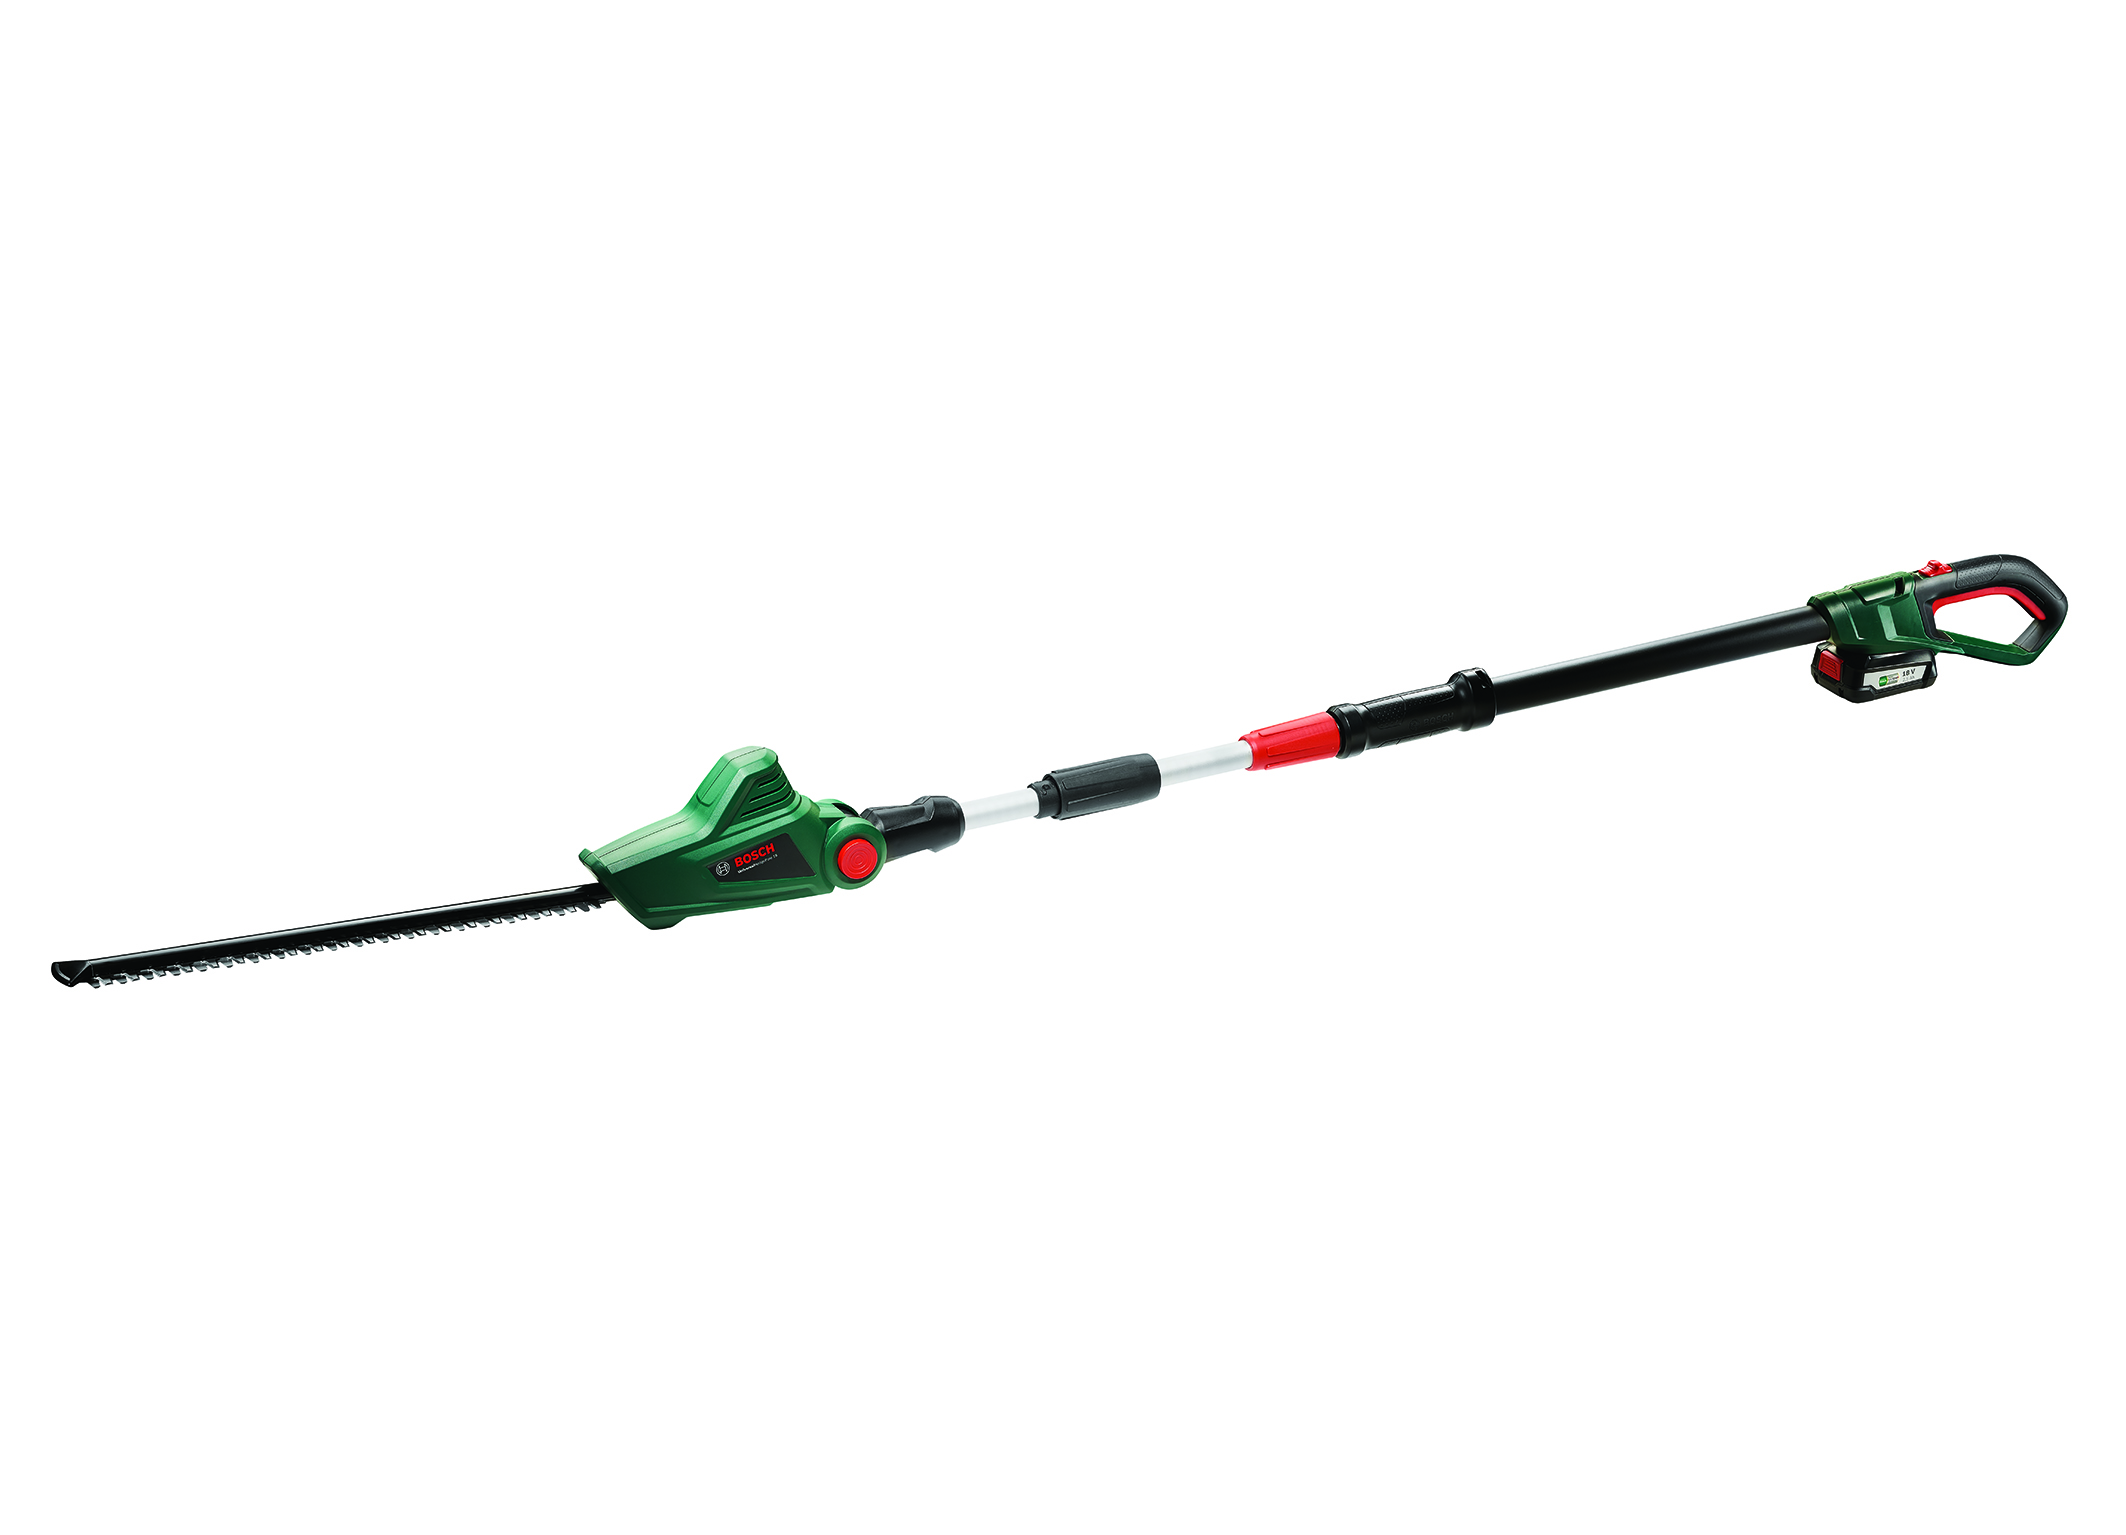 Telescopic tool for effortless work without a ladder: UniversalHedgePole 18 hedgecutter from Bosch